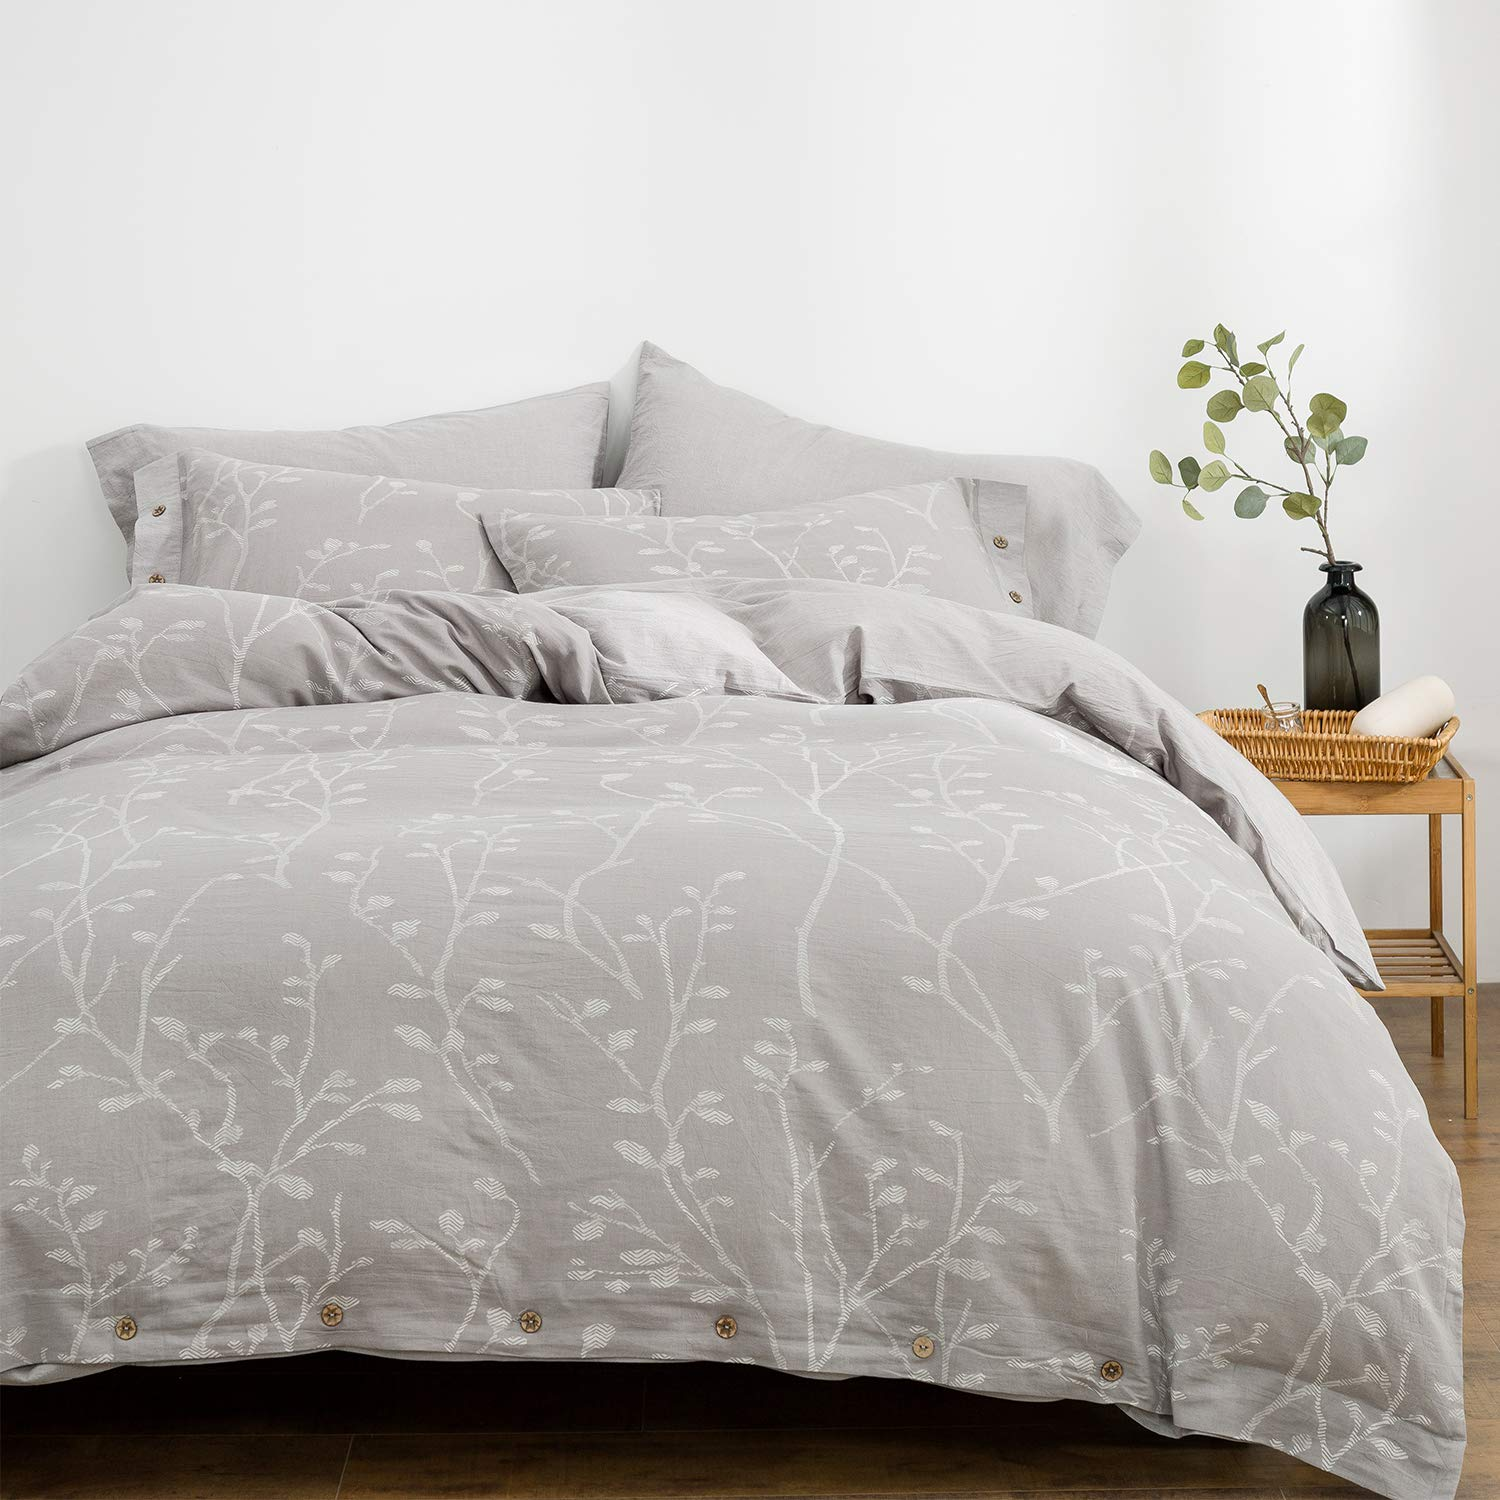 OREISE Duvet Cover Set King Size Washed Cotton Yarn Jacquard Gray and White Thin Branch Pattern Floral Style 3Piece Bedding Set